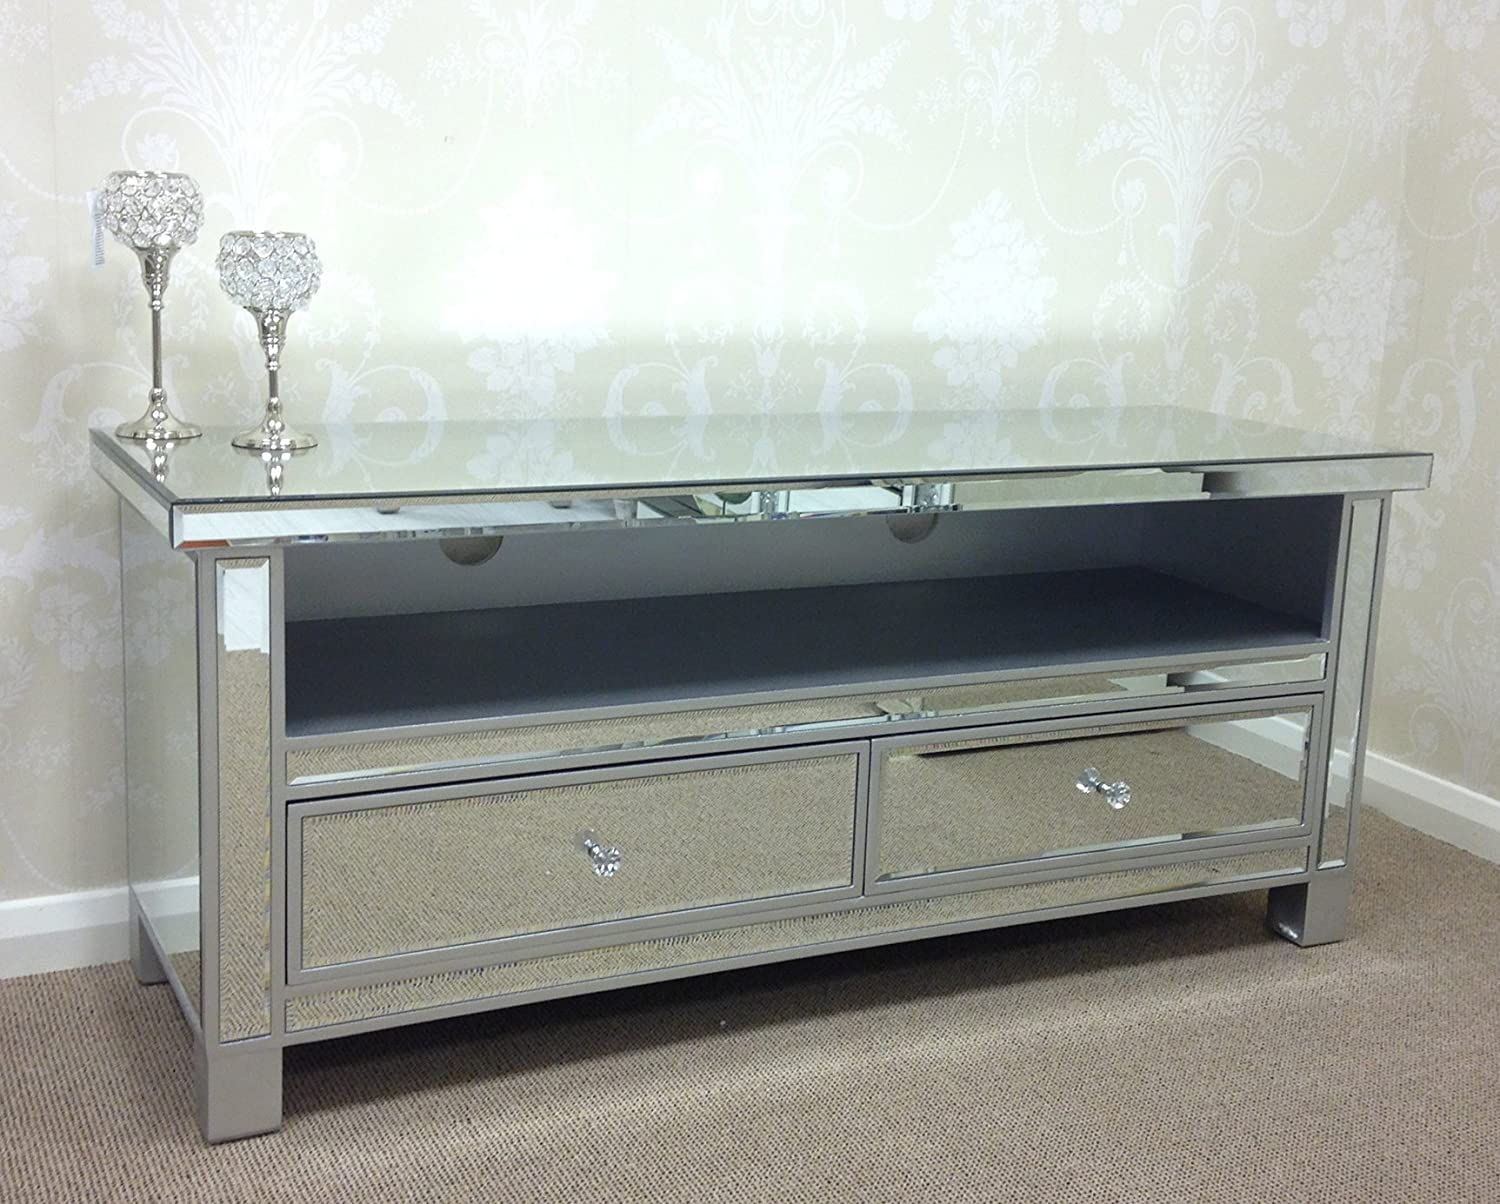 Large Silver Edged Venetian Mirrored Glass 2 Drawer Widescreen TV Stand Cabinet Amazoncouk Kitchen Home